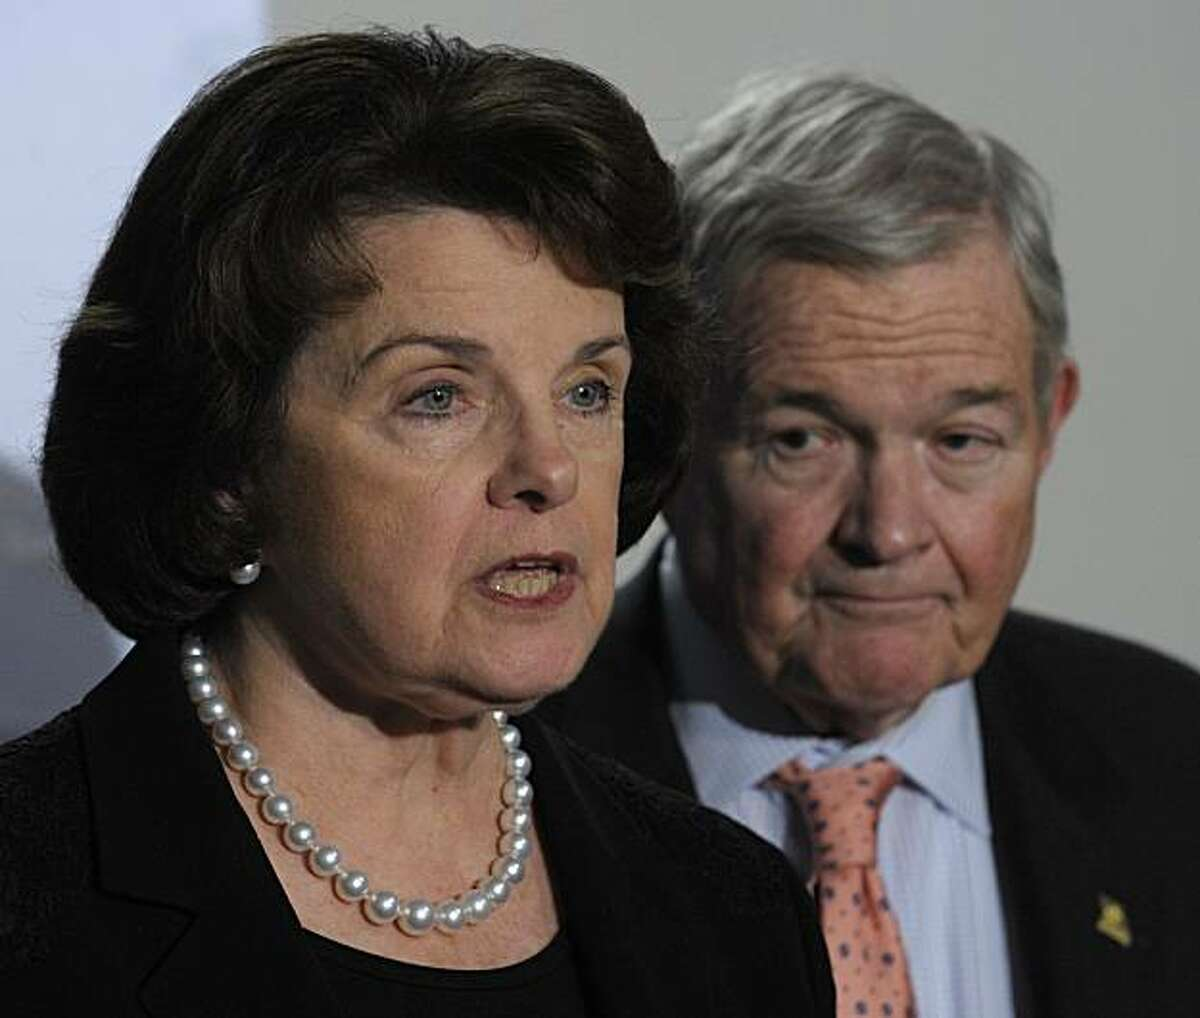 Senate Intelligence Committee Chairman Sen. Dianne Feinstein, D-Calif., left, and ranking member Sen. Christopher Bond, R-Mo., right, hold a news conference on the Christmas day bomb attempt following a closed door briefing on Capitol Hill in Washington, Thursday, Jan. 21, 2010. (AP Photo/Susan Walsh)